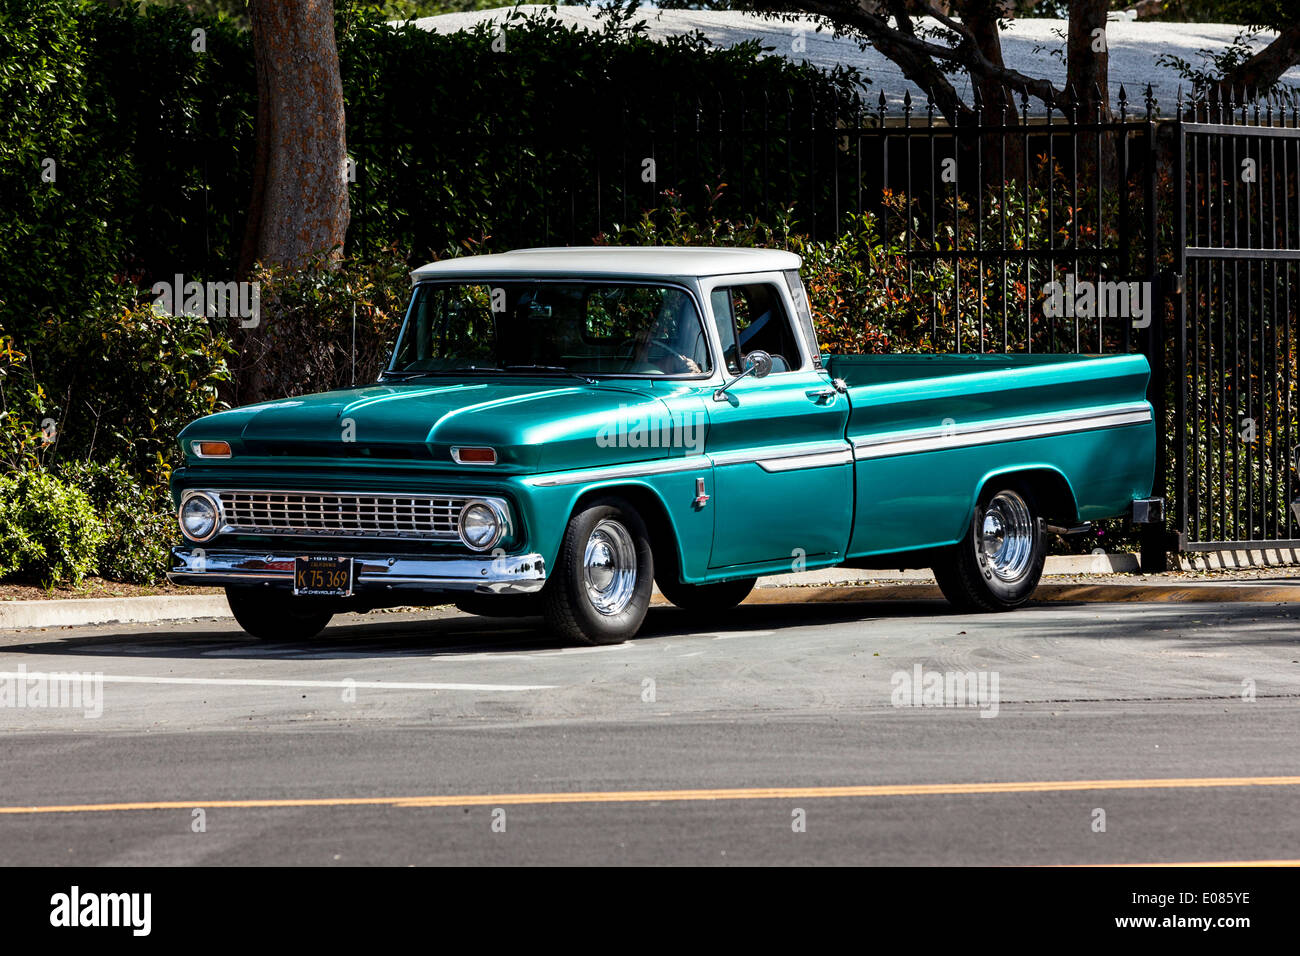 A 1963 Chevy Truck Stock Photo Alamy